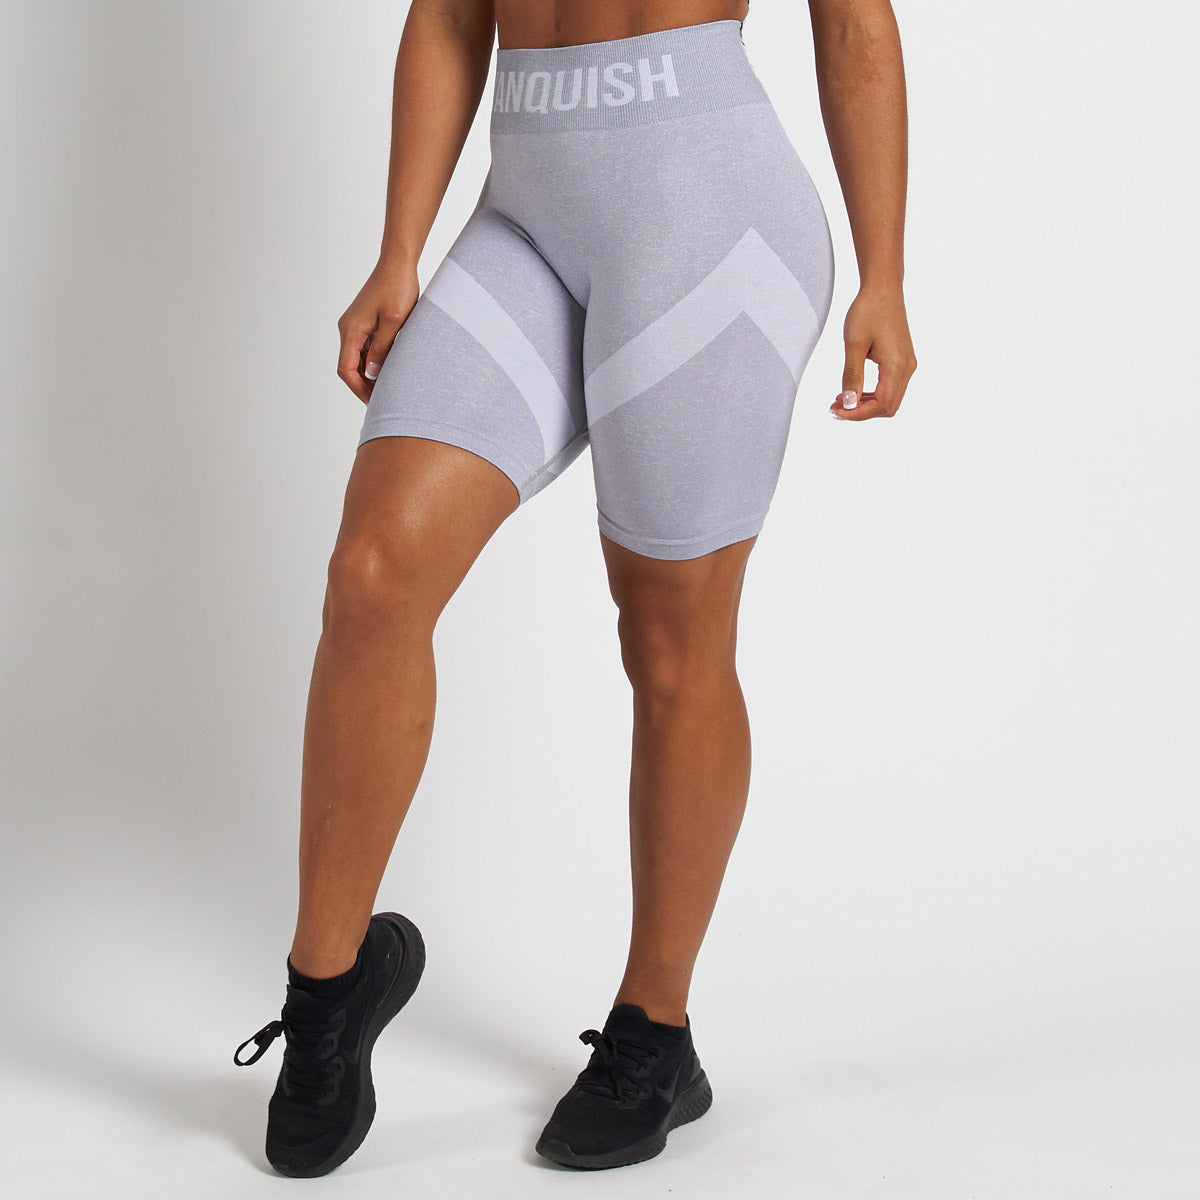 Vanquish Allure White Seamless Cycling Shorts